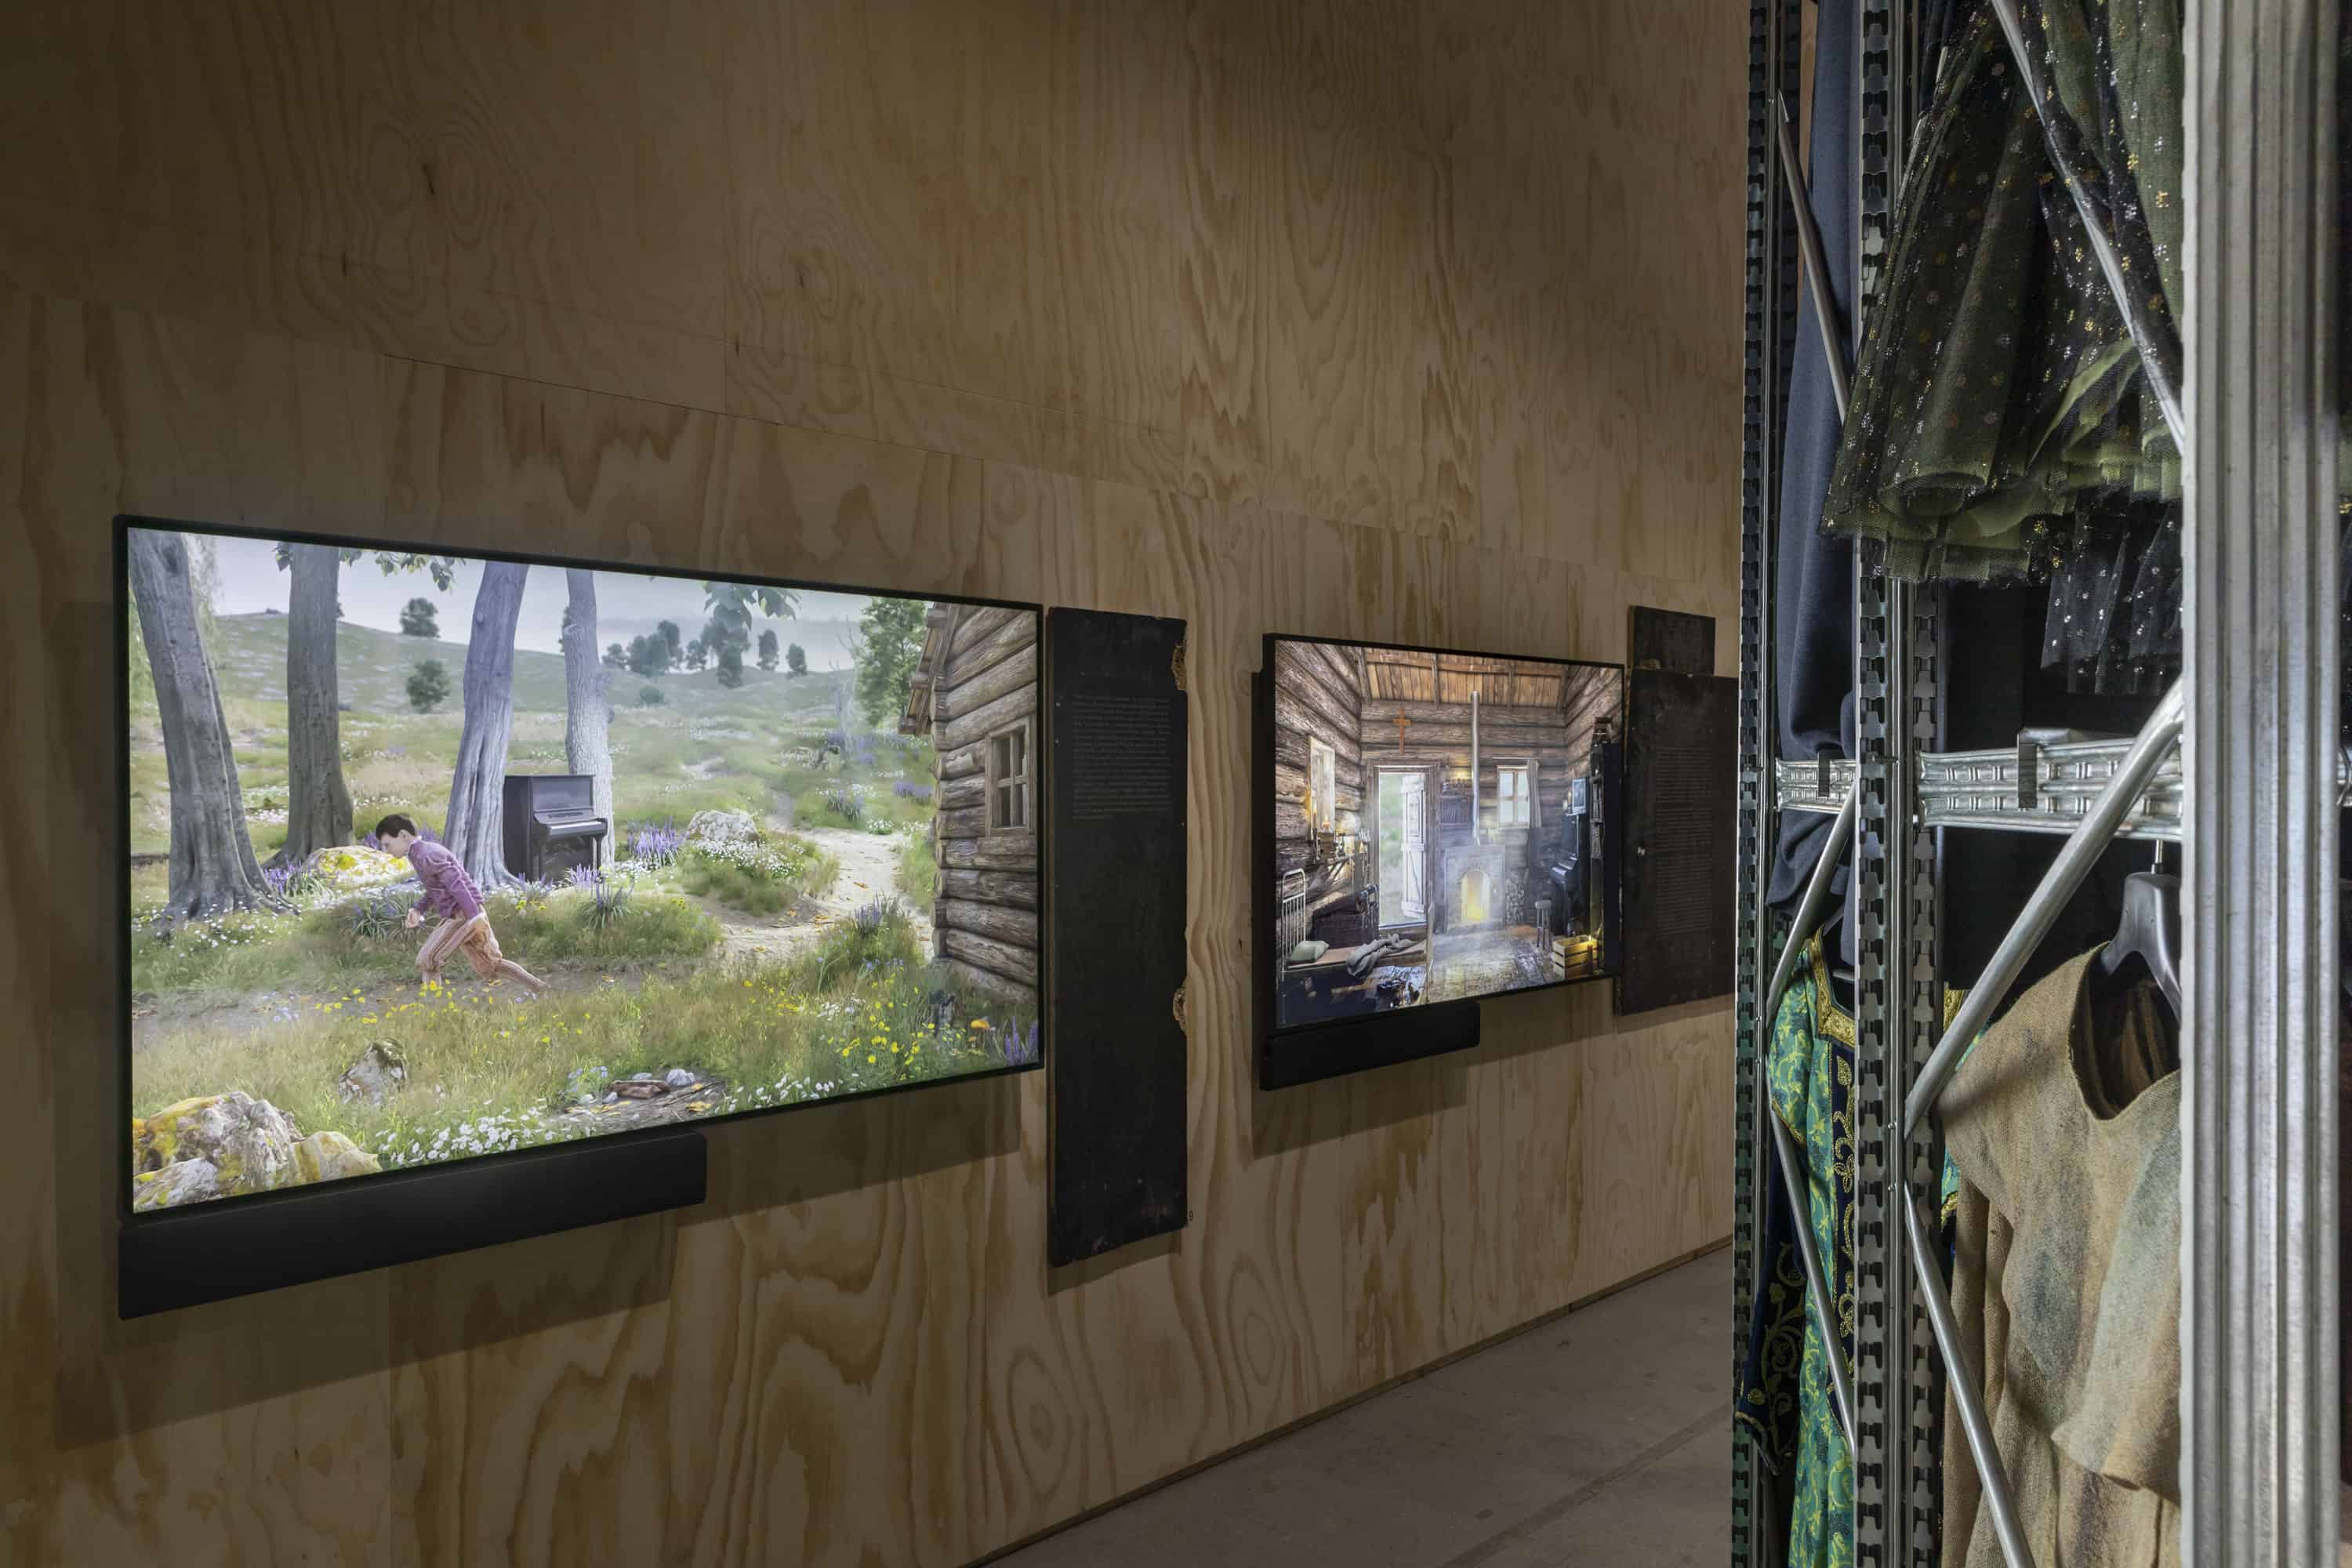 Ed Atkins, Old Food, 2017-19, Video loops with sounds, racks of costumes from Teatro Regio Torino, Texts by Contemporary Art Writing Daily, 58th International Art Exhibition - La Biennale di Venezia, May You Live In Interesting Times, Photo by: Roberto Marossi, Courtesy: La Biennale di Venezia, the artist, Galerie Isabella Bortolozzi, Berlin, Cabinet Gallery, London, Gavin Brown's Enterprise, New York, Rome and dépendance, Brussels